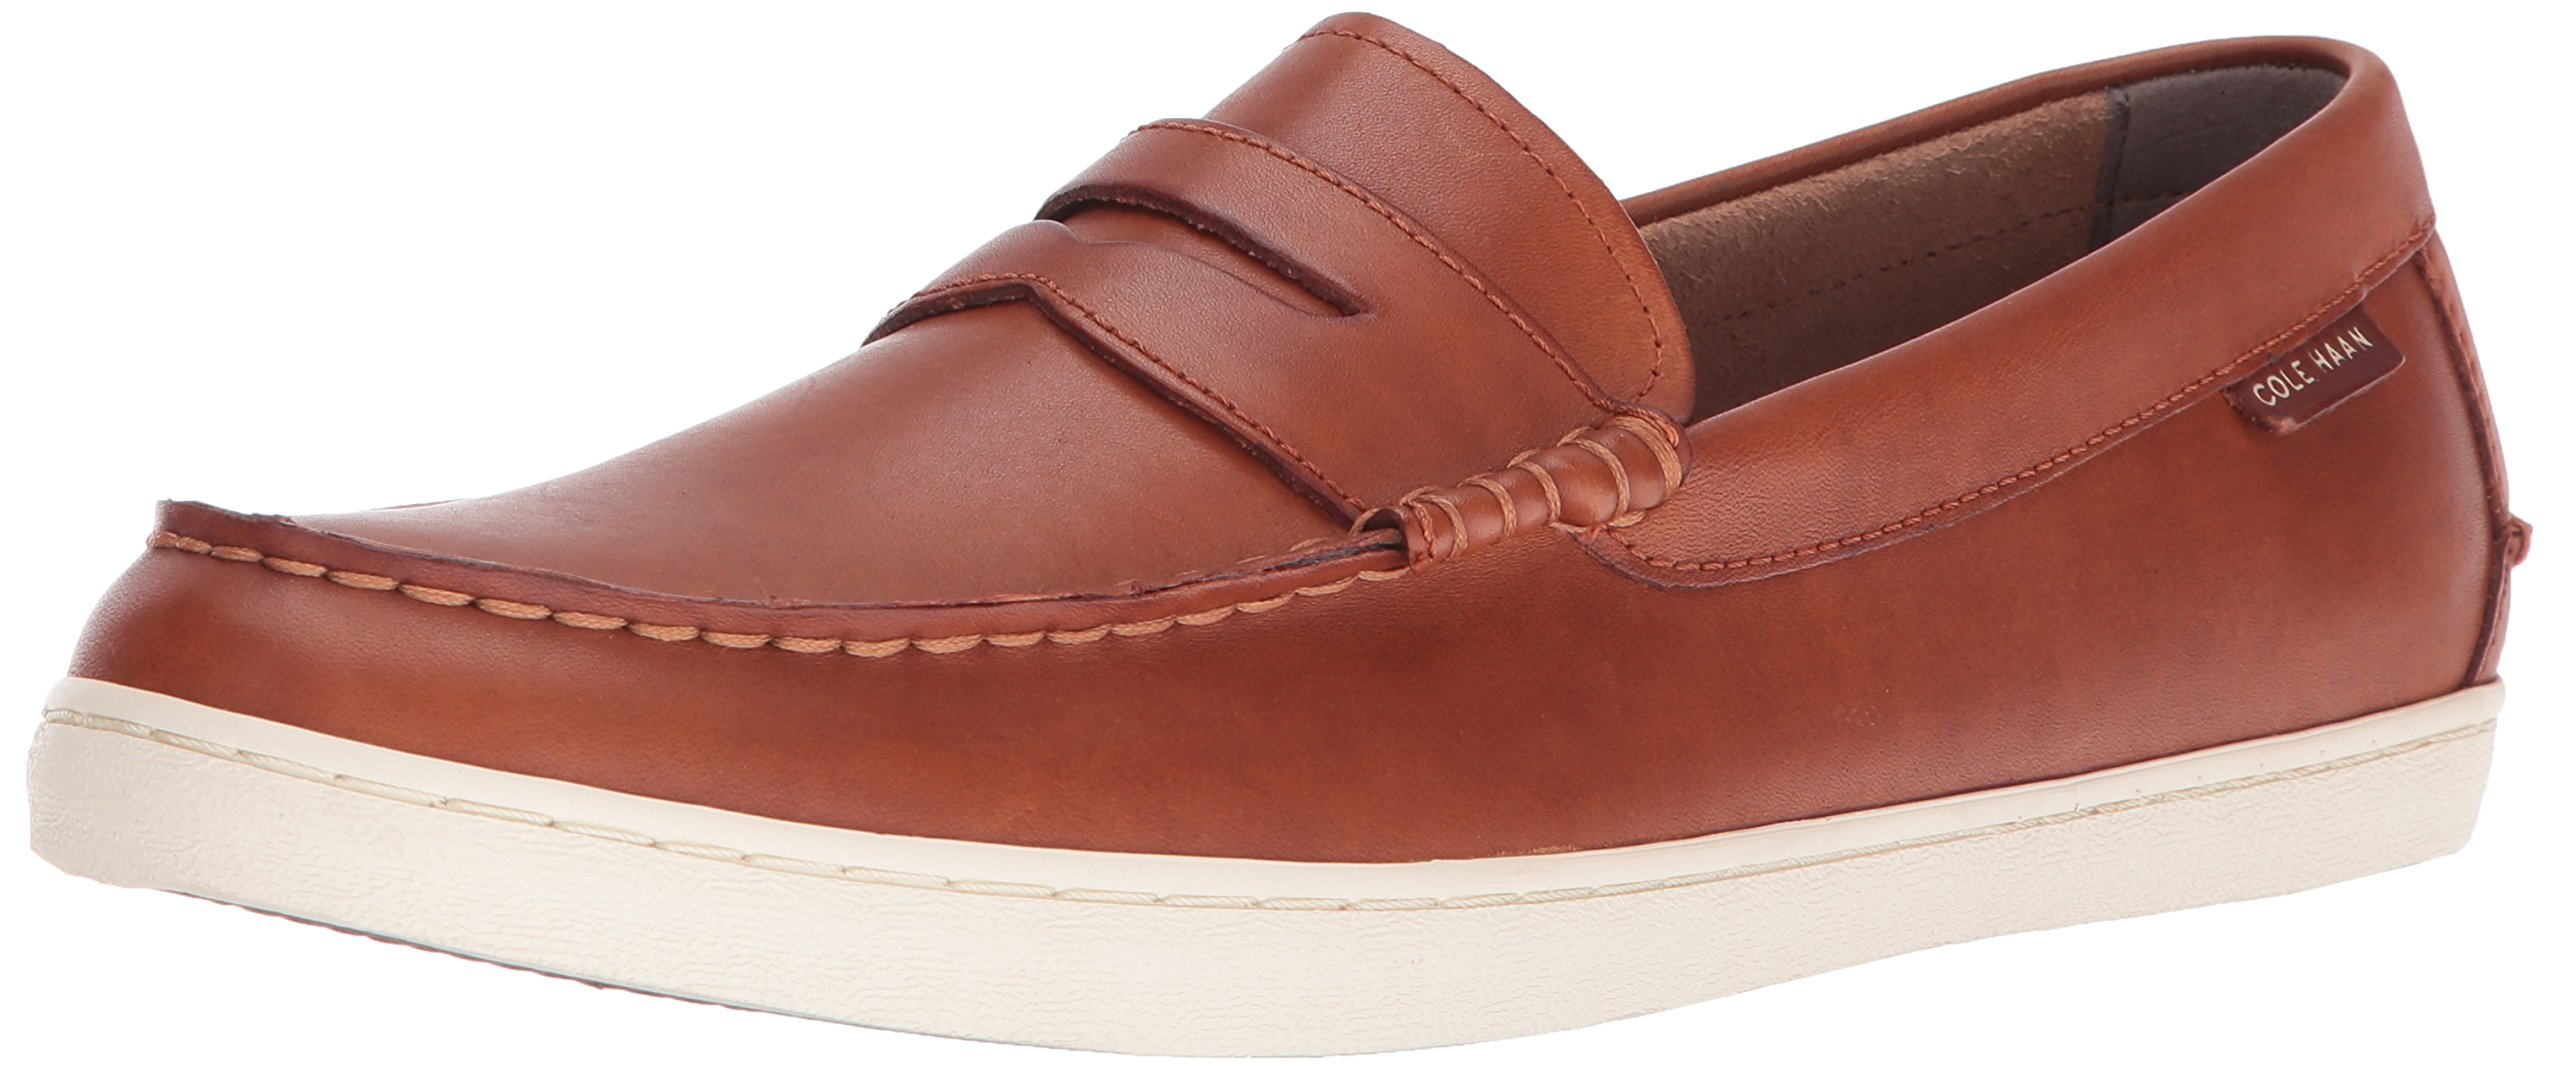 Cole Haan Men's Pinch Weekender Penny Loafer, British Tan, 10 M US